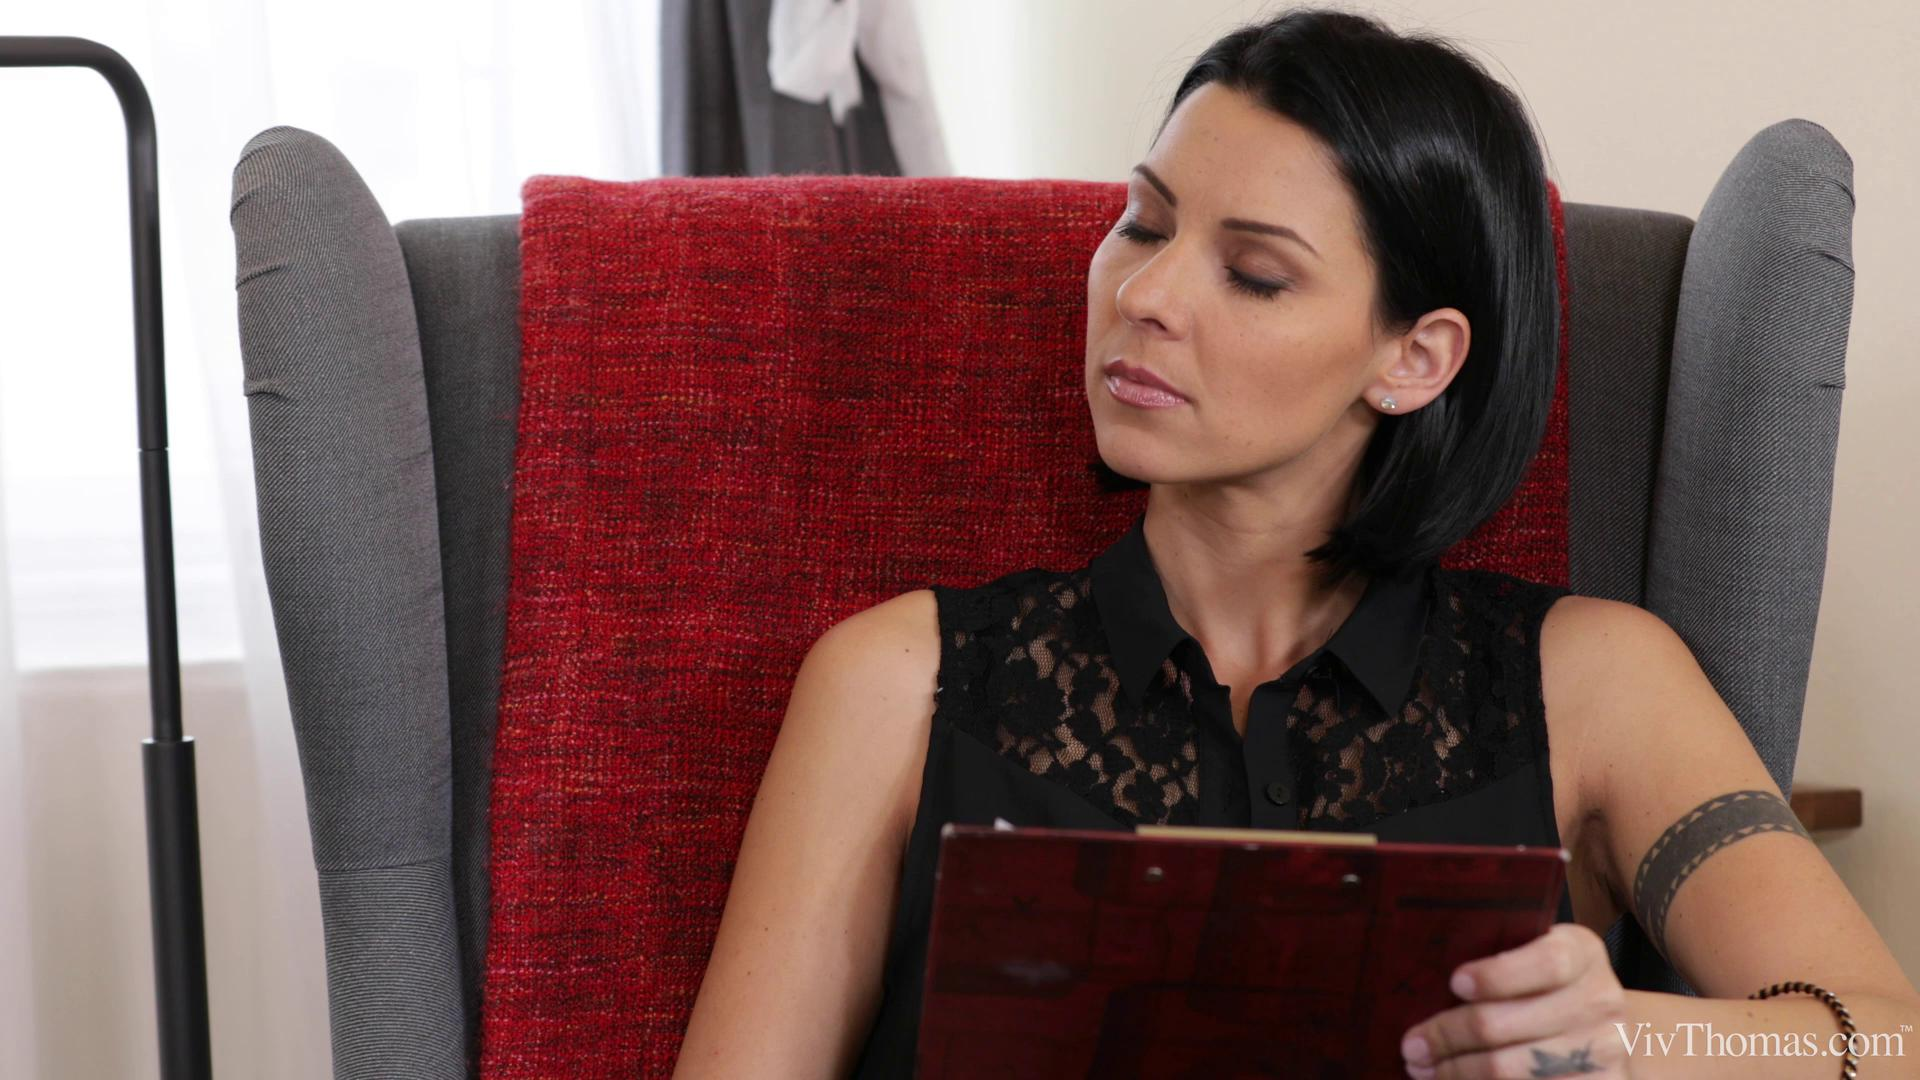 VivThomas – Cindy Hope Nesty A And Sicilia Insatiable